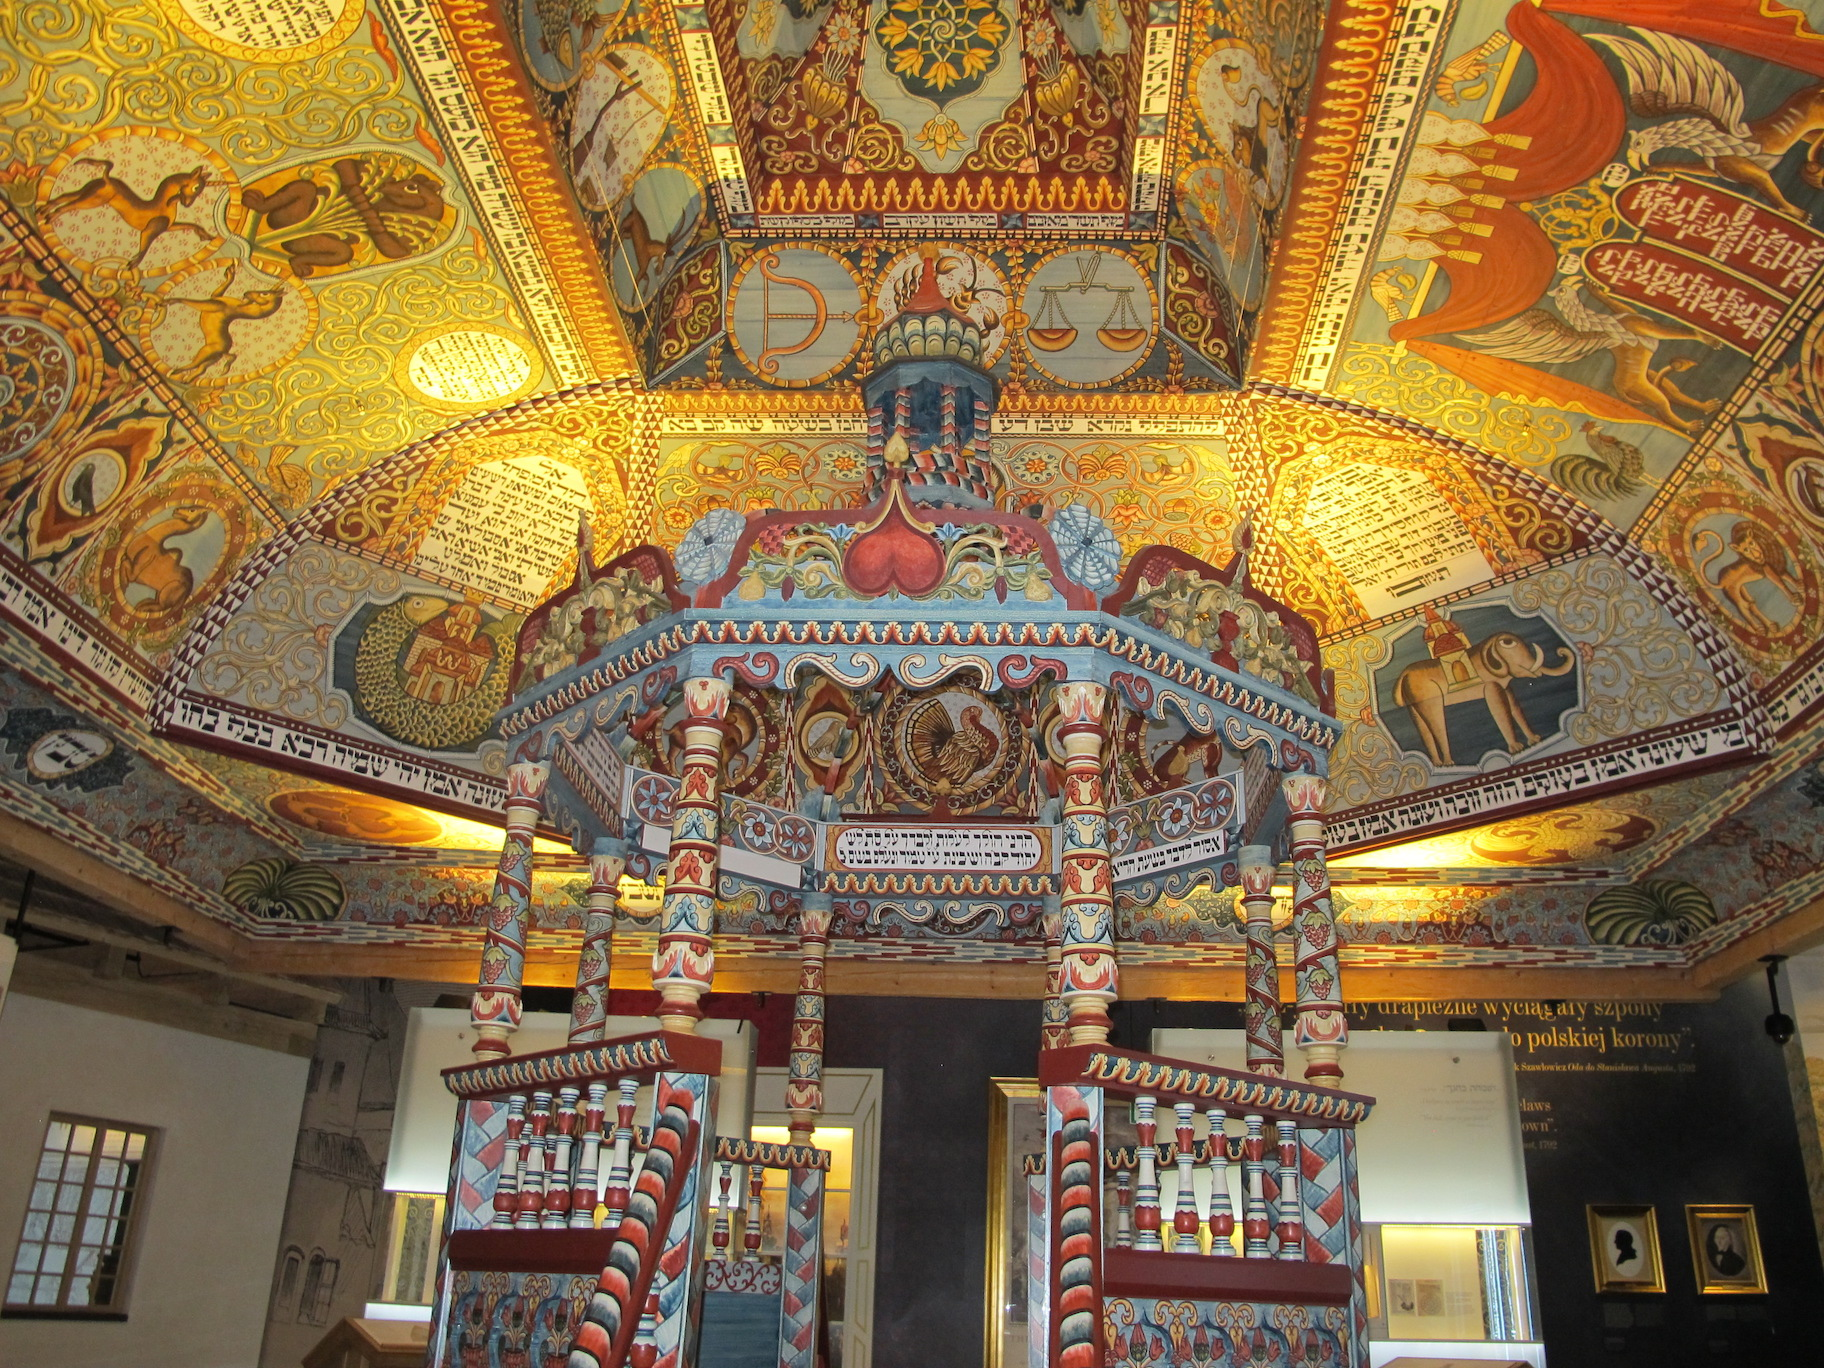 The reconstructed painted ceiling of the wooden synagogue of Gwozdziec, a key installation in the core exhibit of the POLIN Museum of the History of Polish Jews. (Ruth Ellen Gruber)